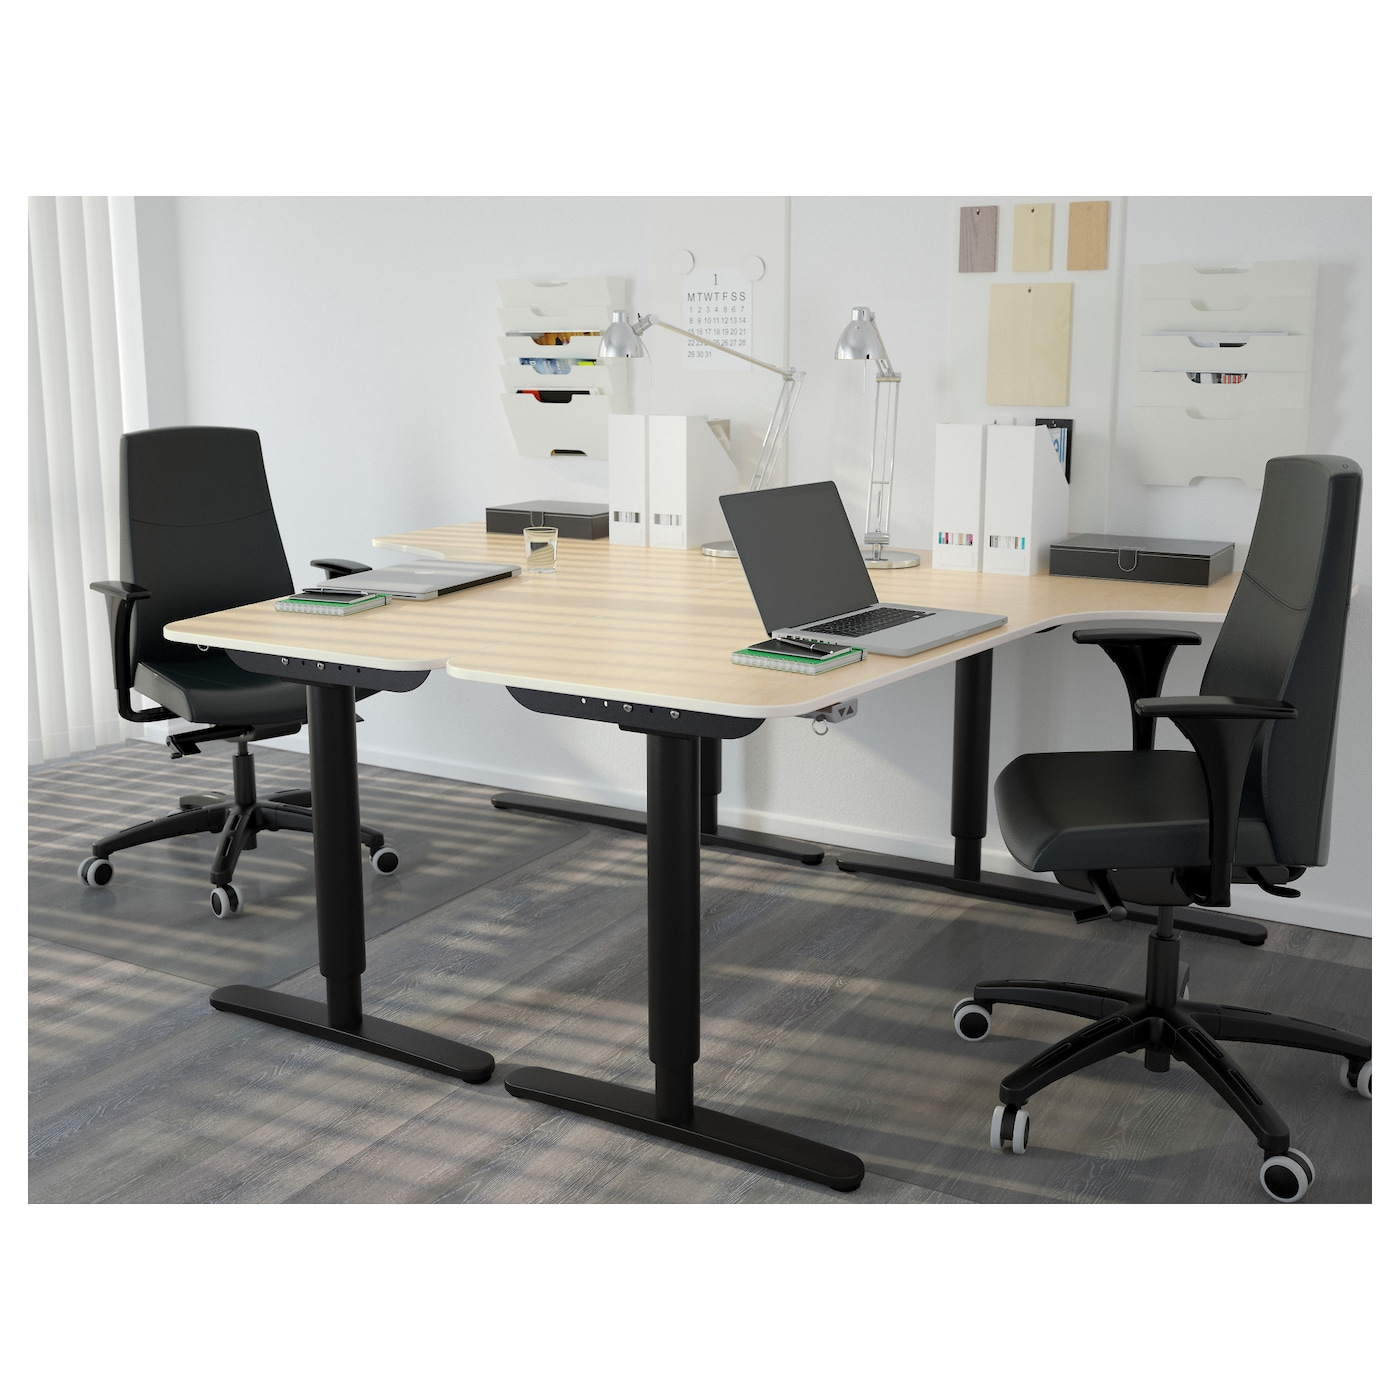 ikea deskleft furniture office collection veneerwhite images of desk in galant black top the with tops birch corner